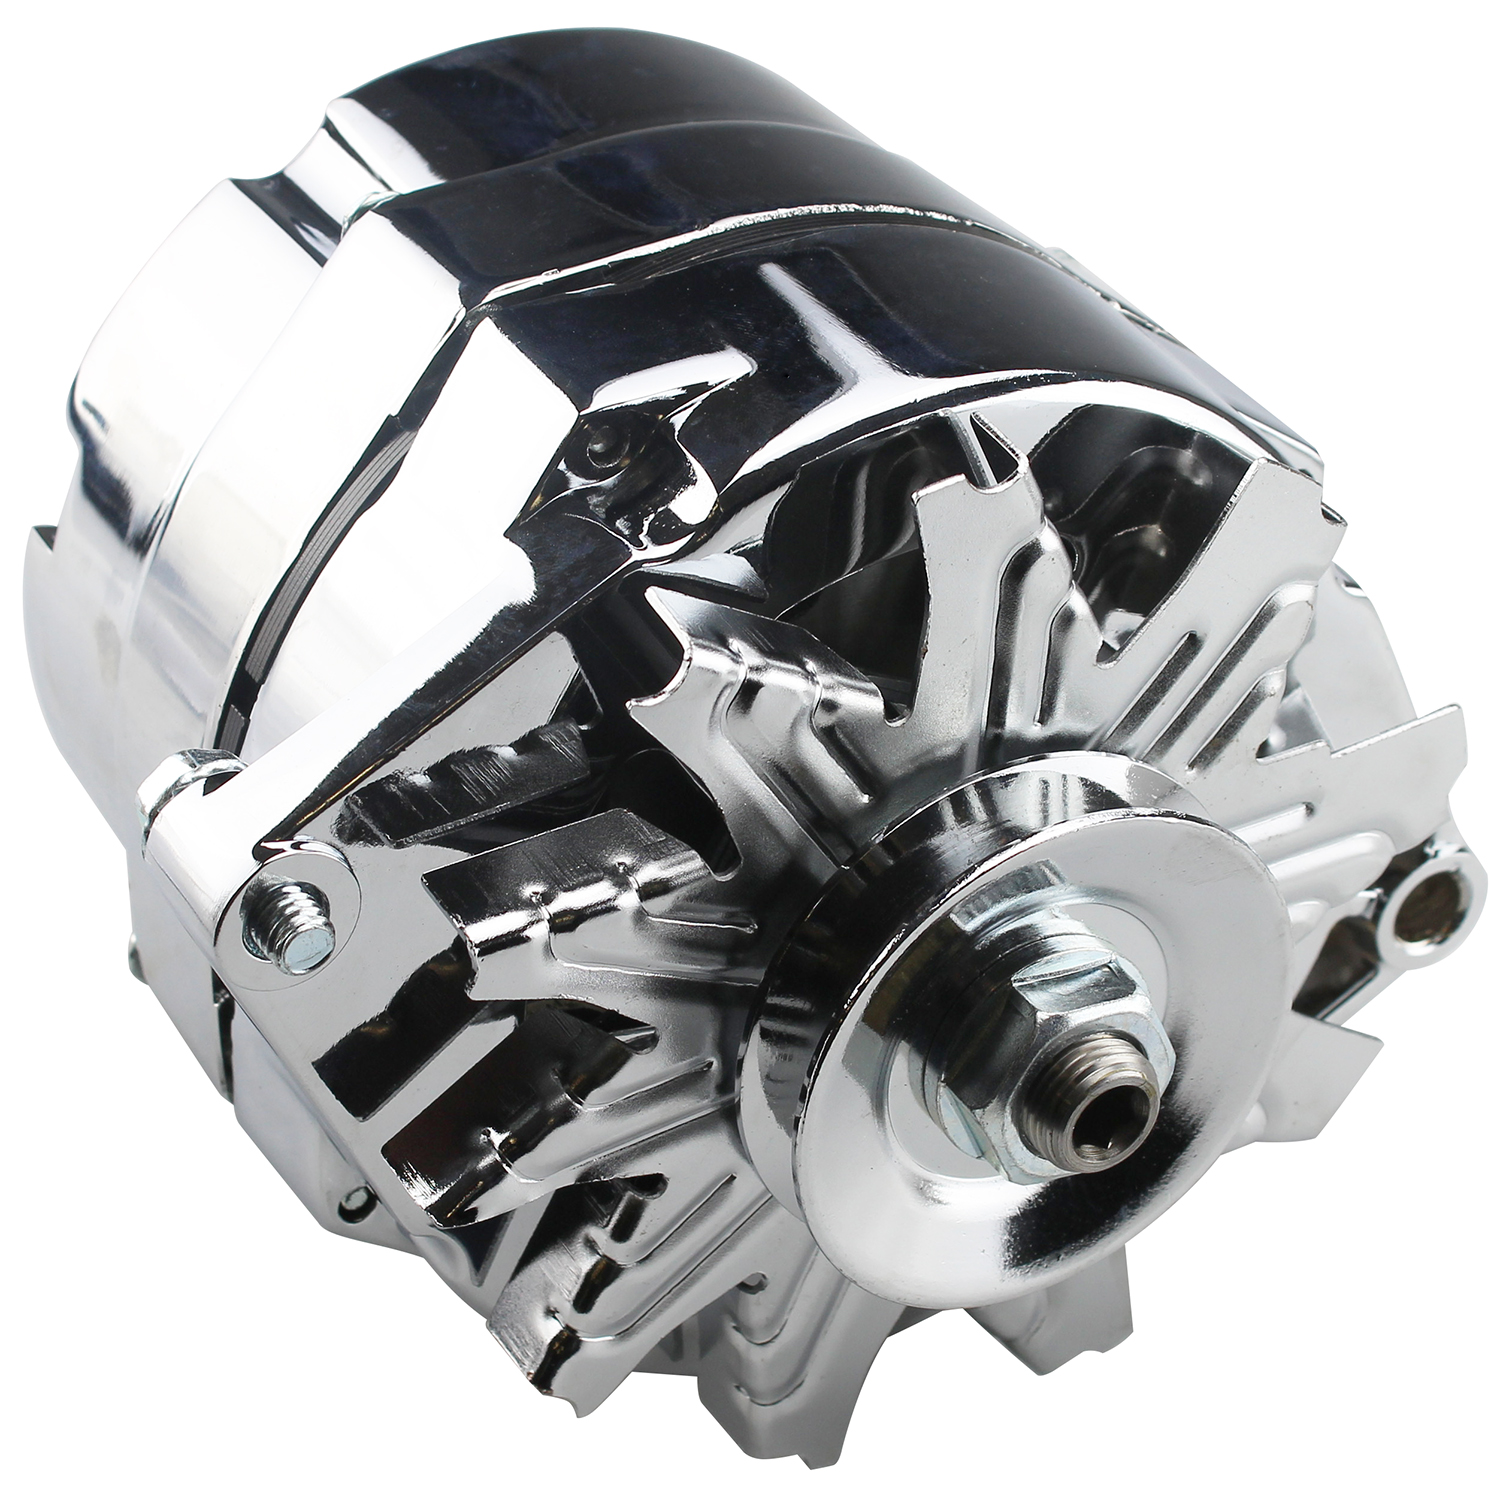 hight resolution of power products high output 1 wire alternator gm 100 amp 10si case chrome